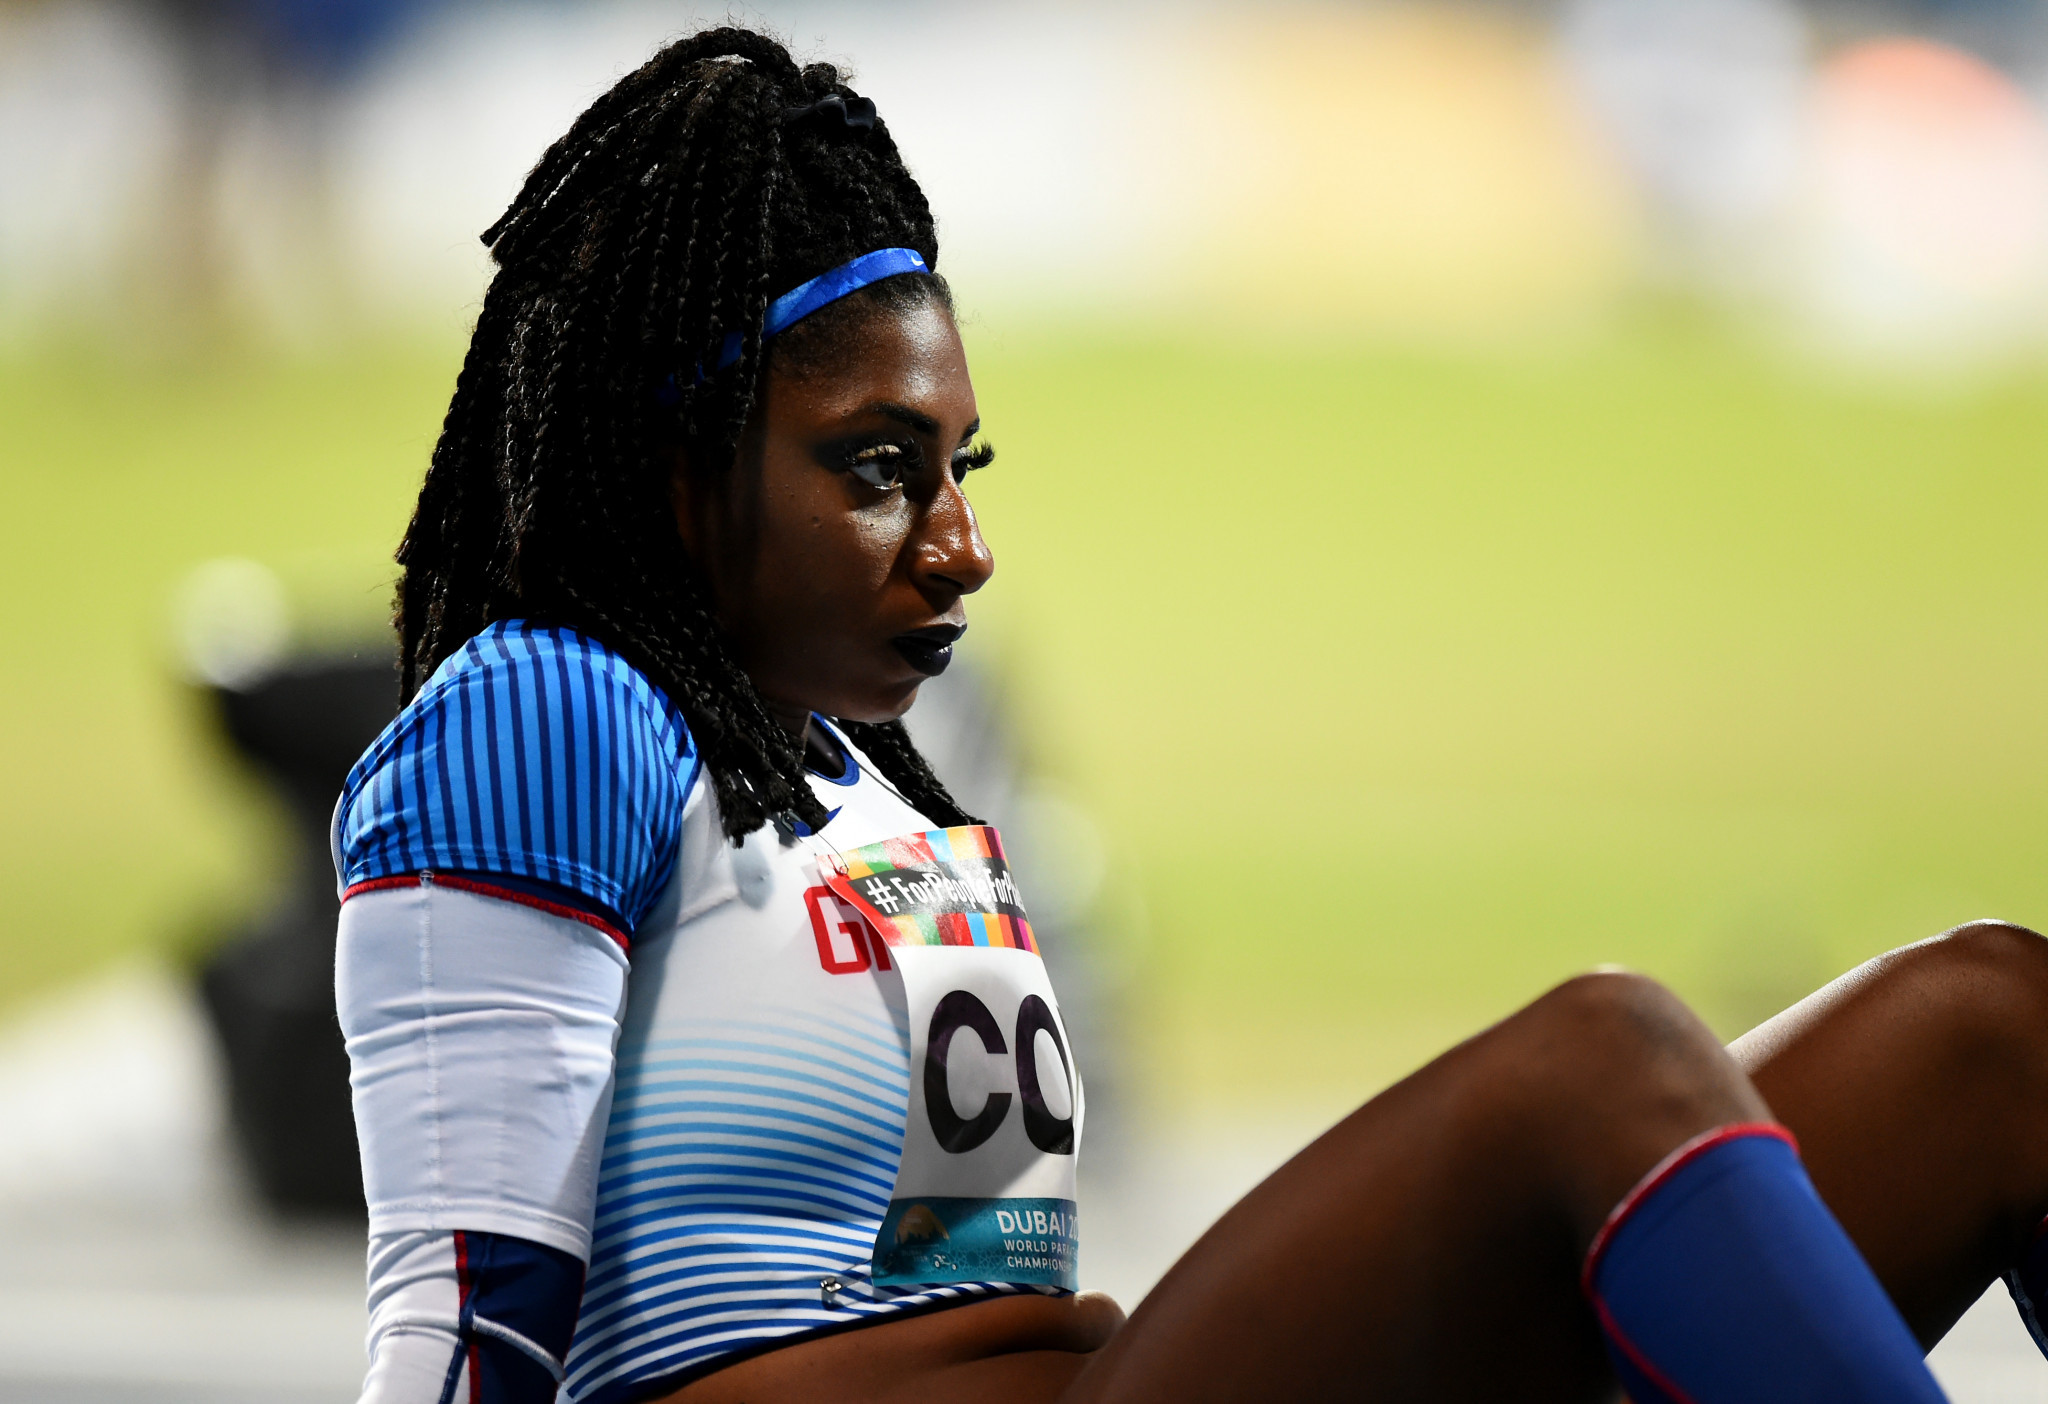 Kadeena Cox will look to defend her T38 400m title at Tokyo 2020 ©Getty Images